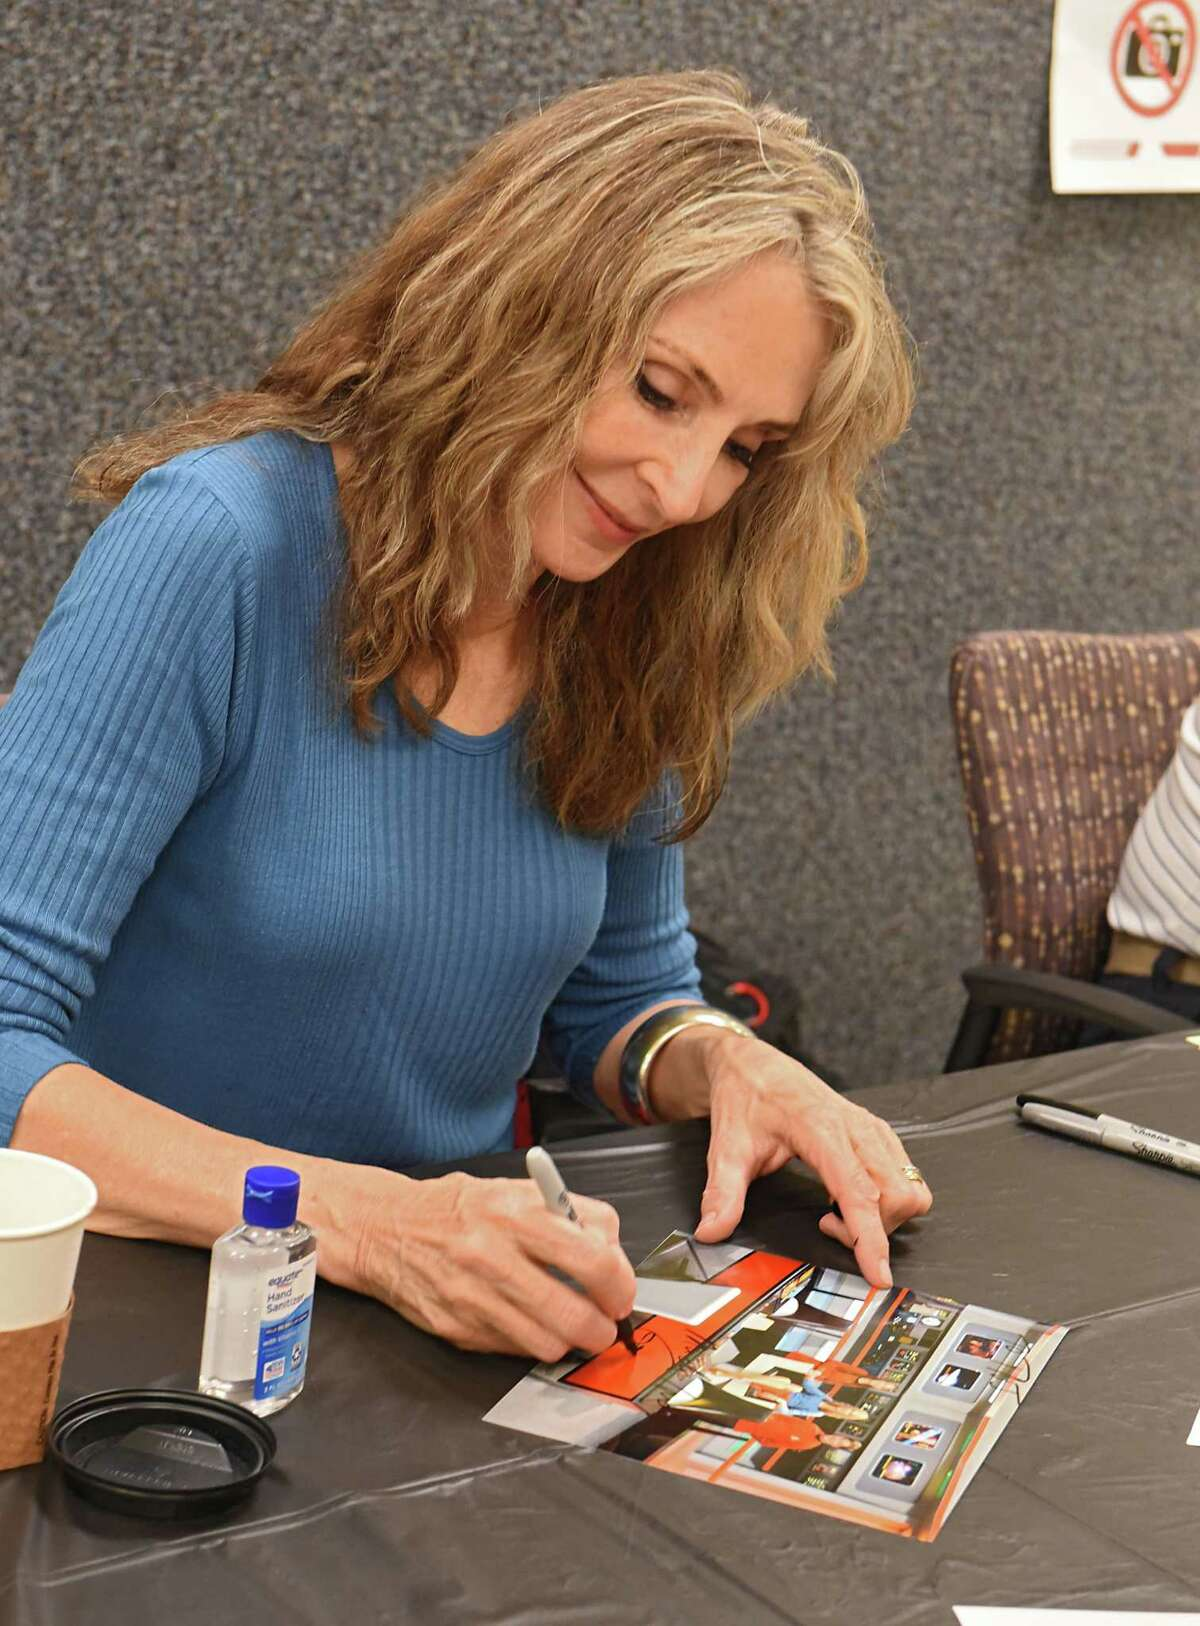 Gates McFadden, who played Dr. Beverly Crusher in the Star Trek Next Generation TV series, signs autographs for fans in the Ticonderoga High School gym during Trekonderoga 2018 on Friday, Aug. 24, 2018 in Ticonderoga, N.Y. (Lori Van Buren/Times Union)